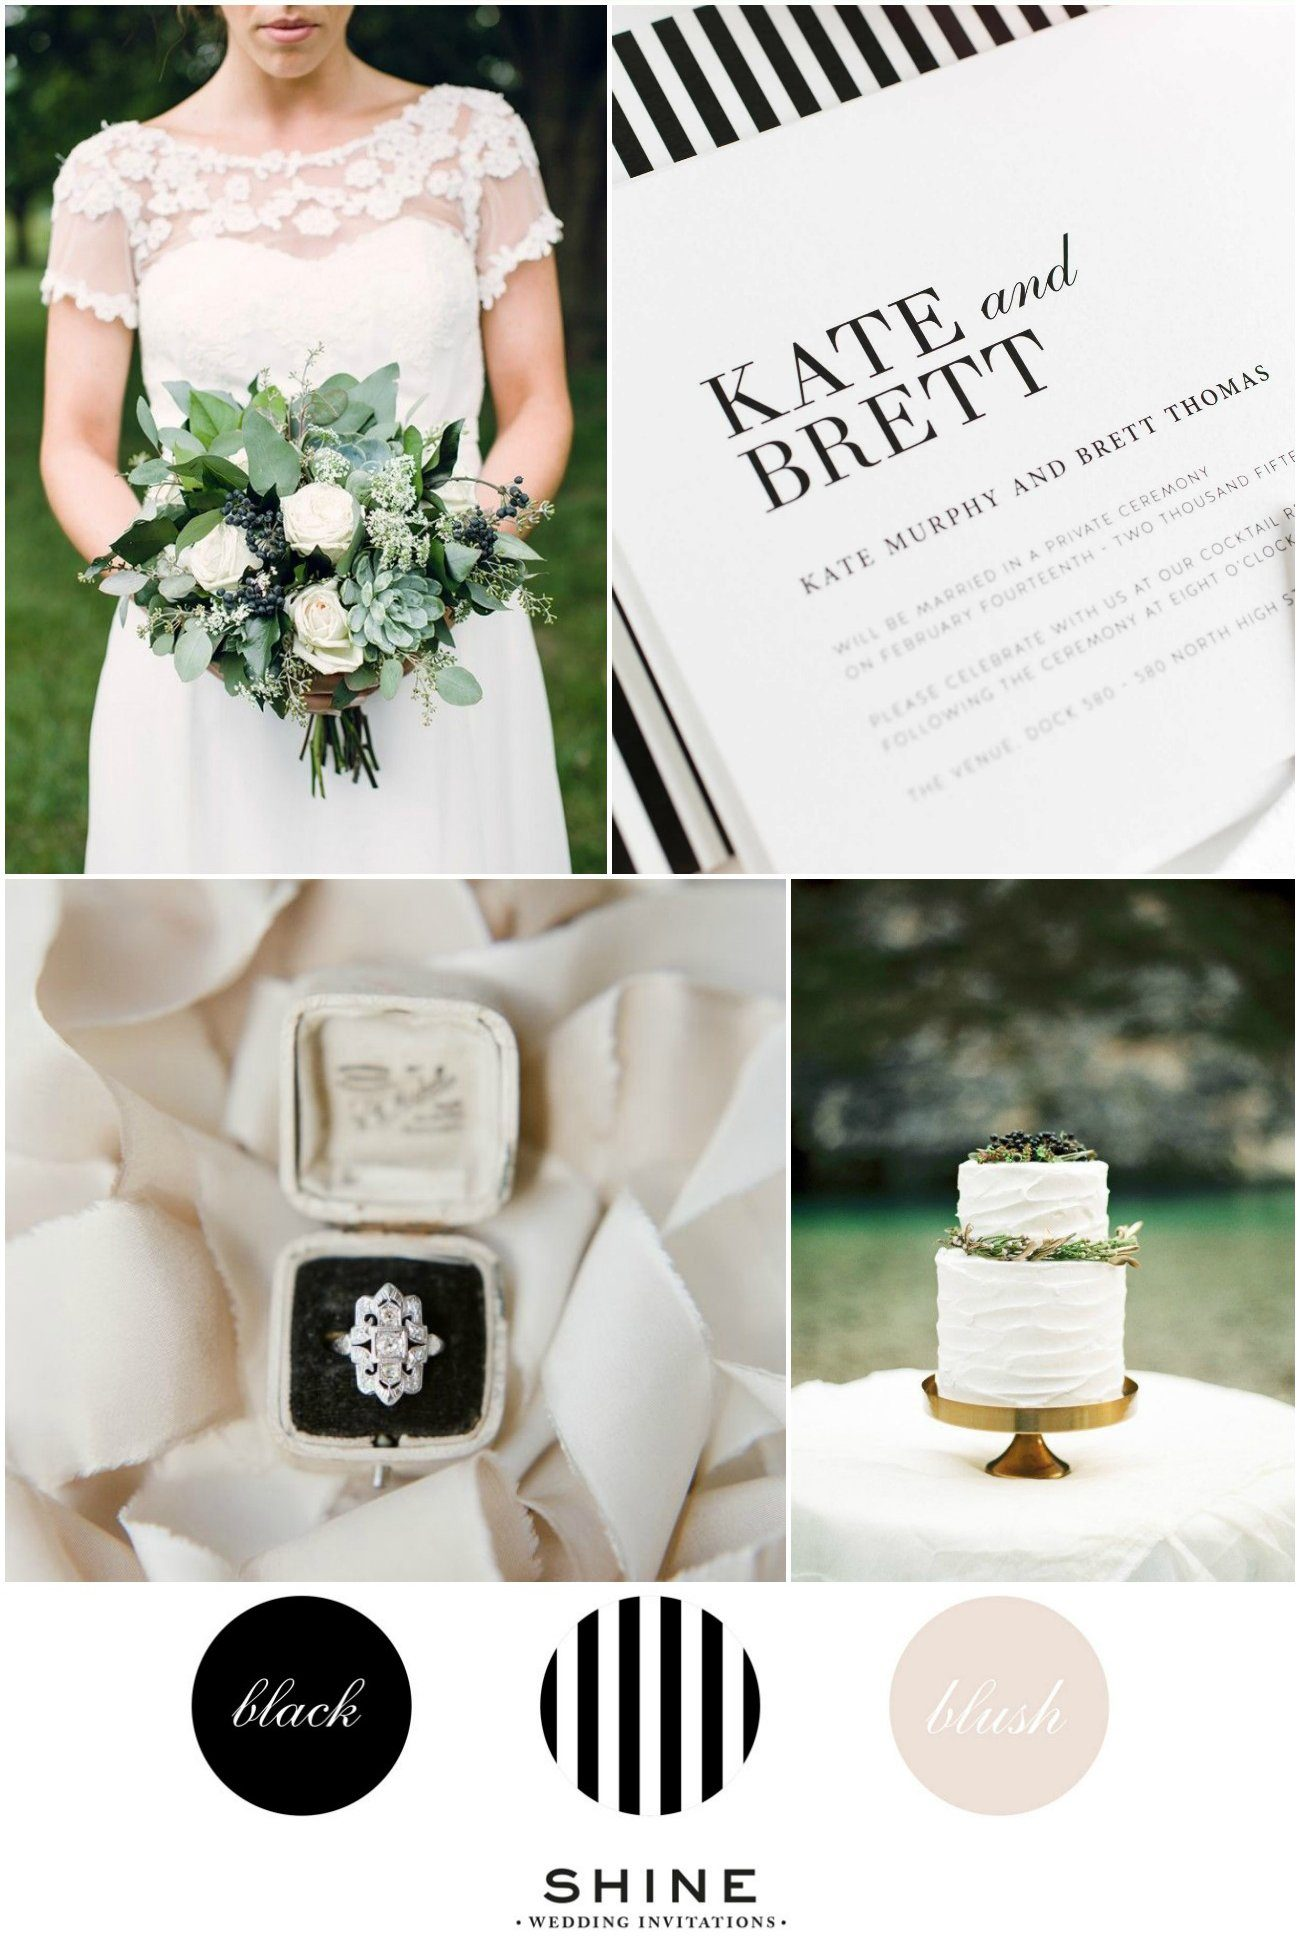 Black and White Striped Wedding Inspiration with Blush Pink Accents